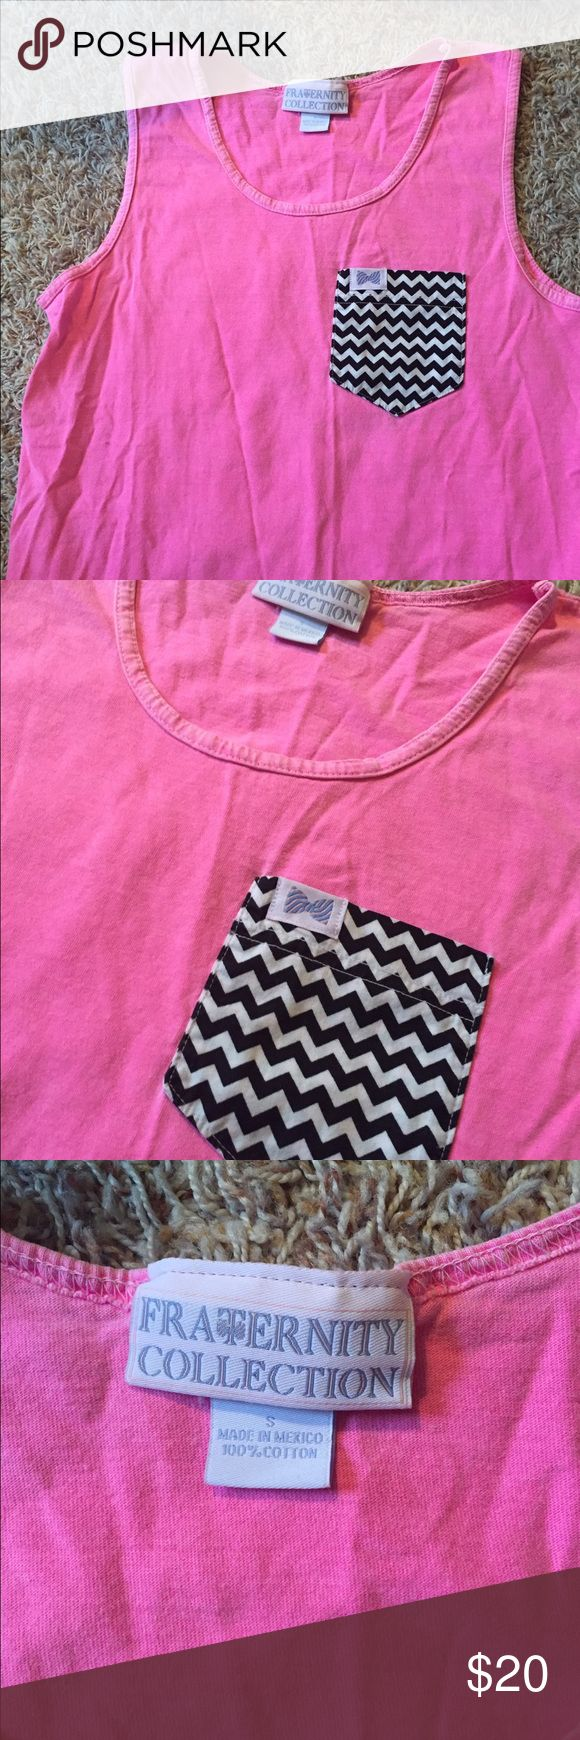 Fraternity collection tank In excellent condition Vineyard Vines Tops Tank Tops